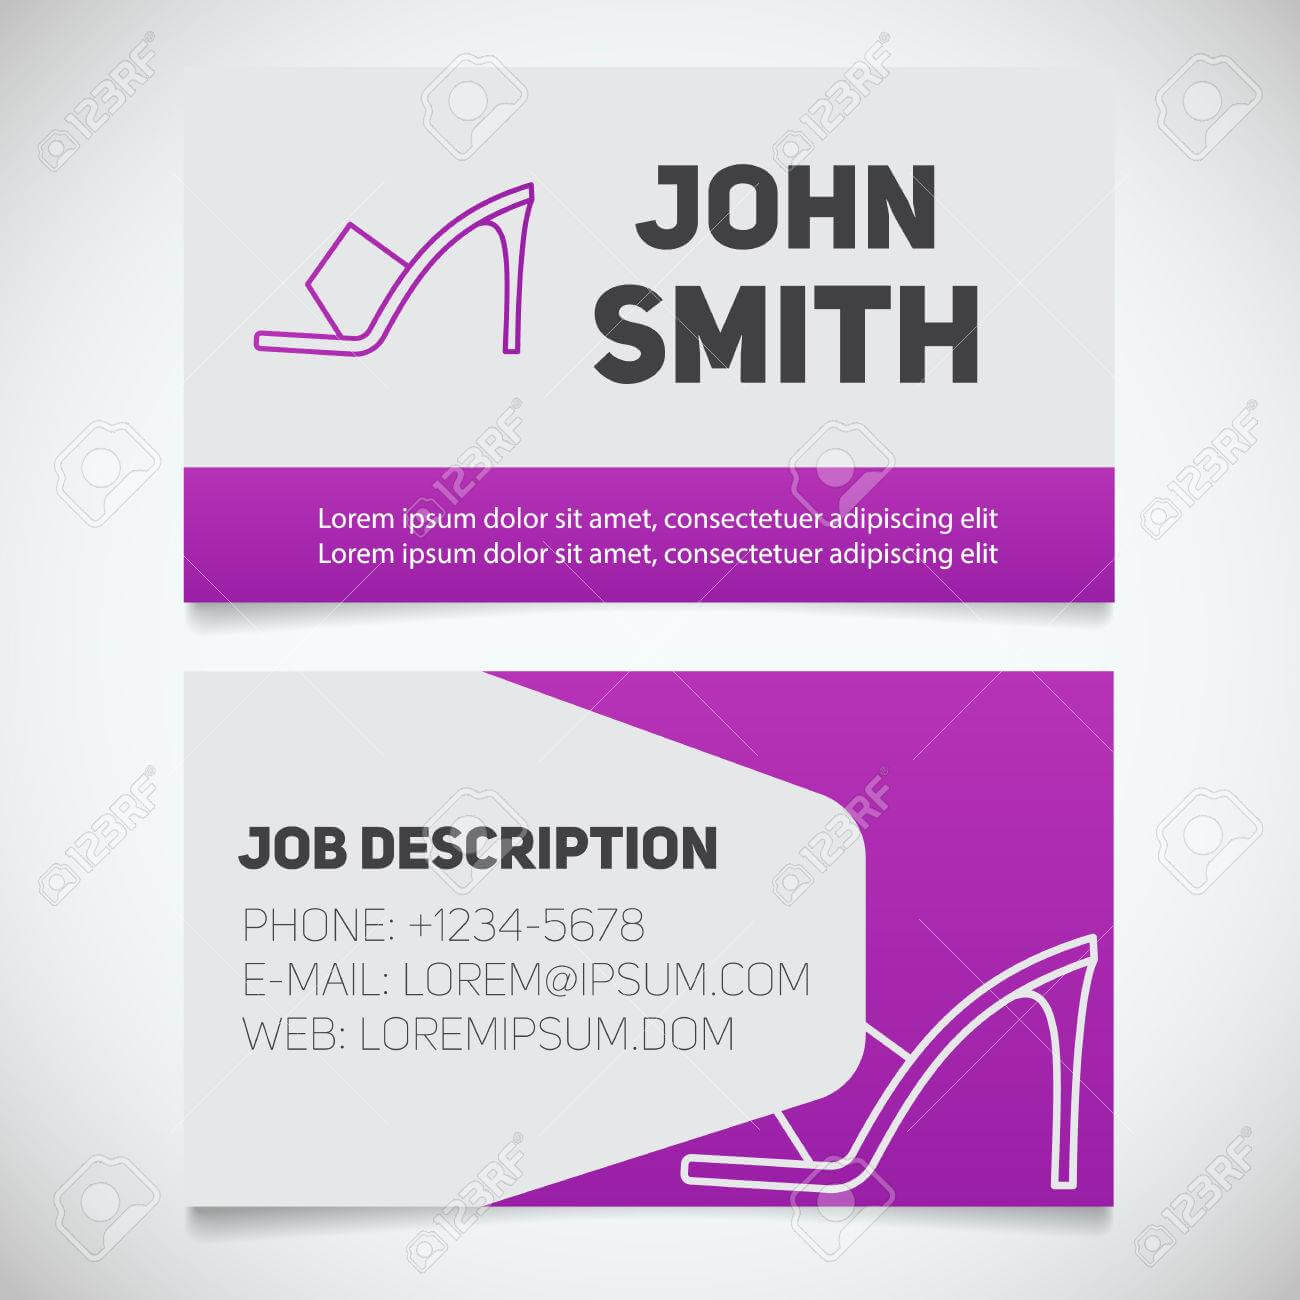 Business Card Print Template With High Heel Shoe Logo. Manager for High Heel Template For Cards